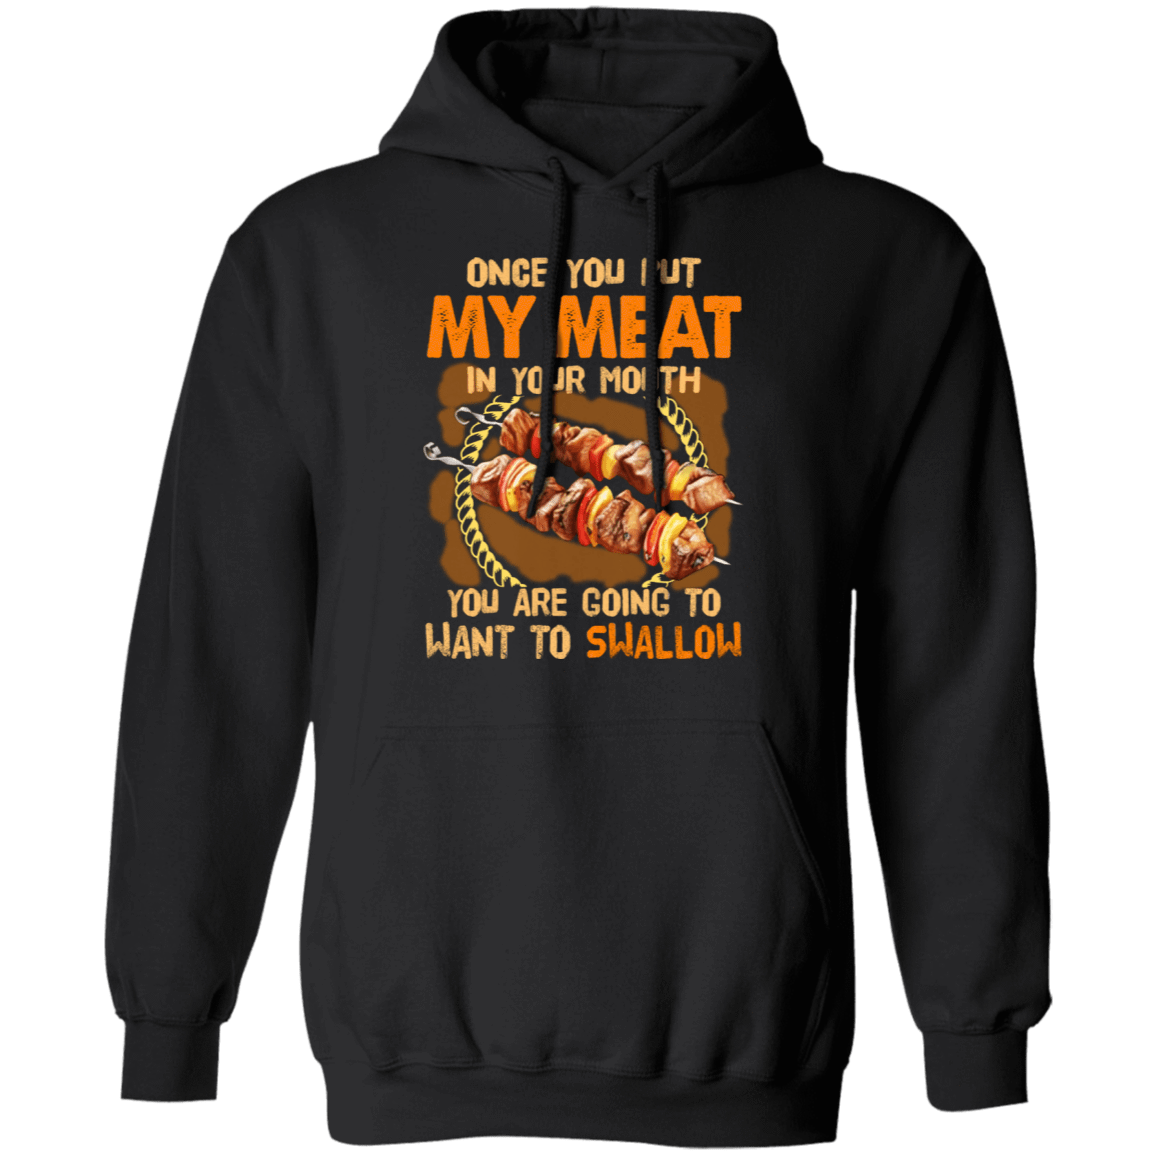 Once You Put My Meat In Your Mouth You Are Going To Want To Swallow T-Shirts, Hoodies 541-4740-80162959-23087 - Tee Ript